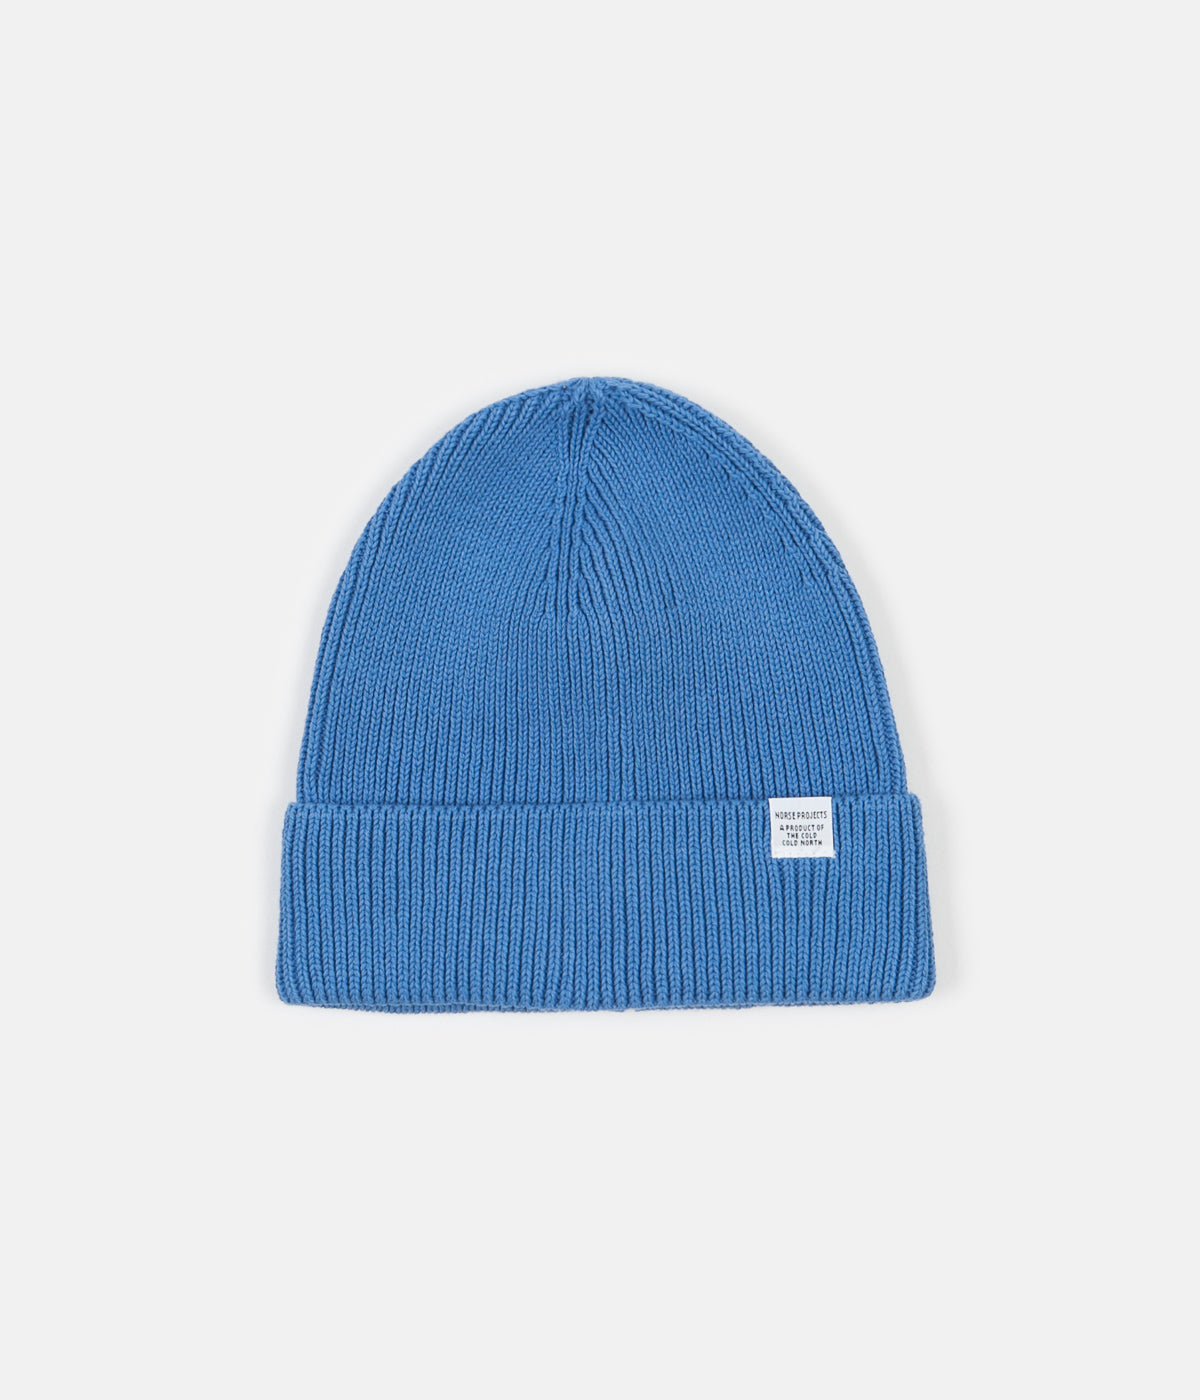 497178c6328 Norse Projects Norse Cotton Watch Beanie - Cali Blue